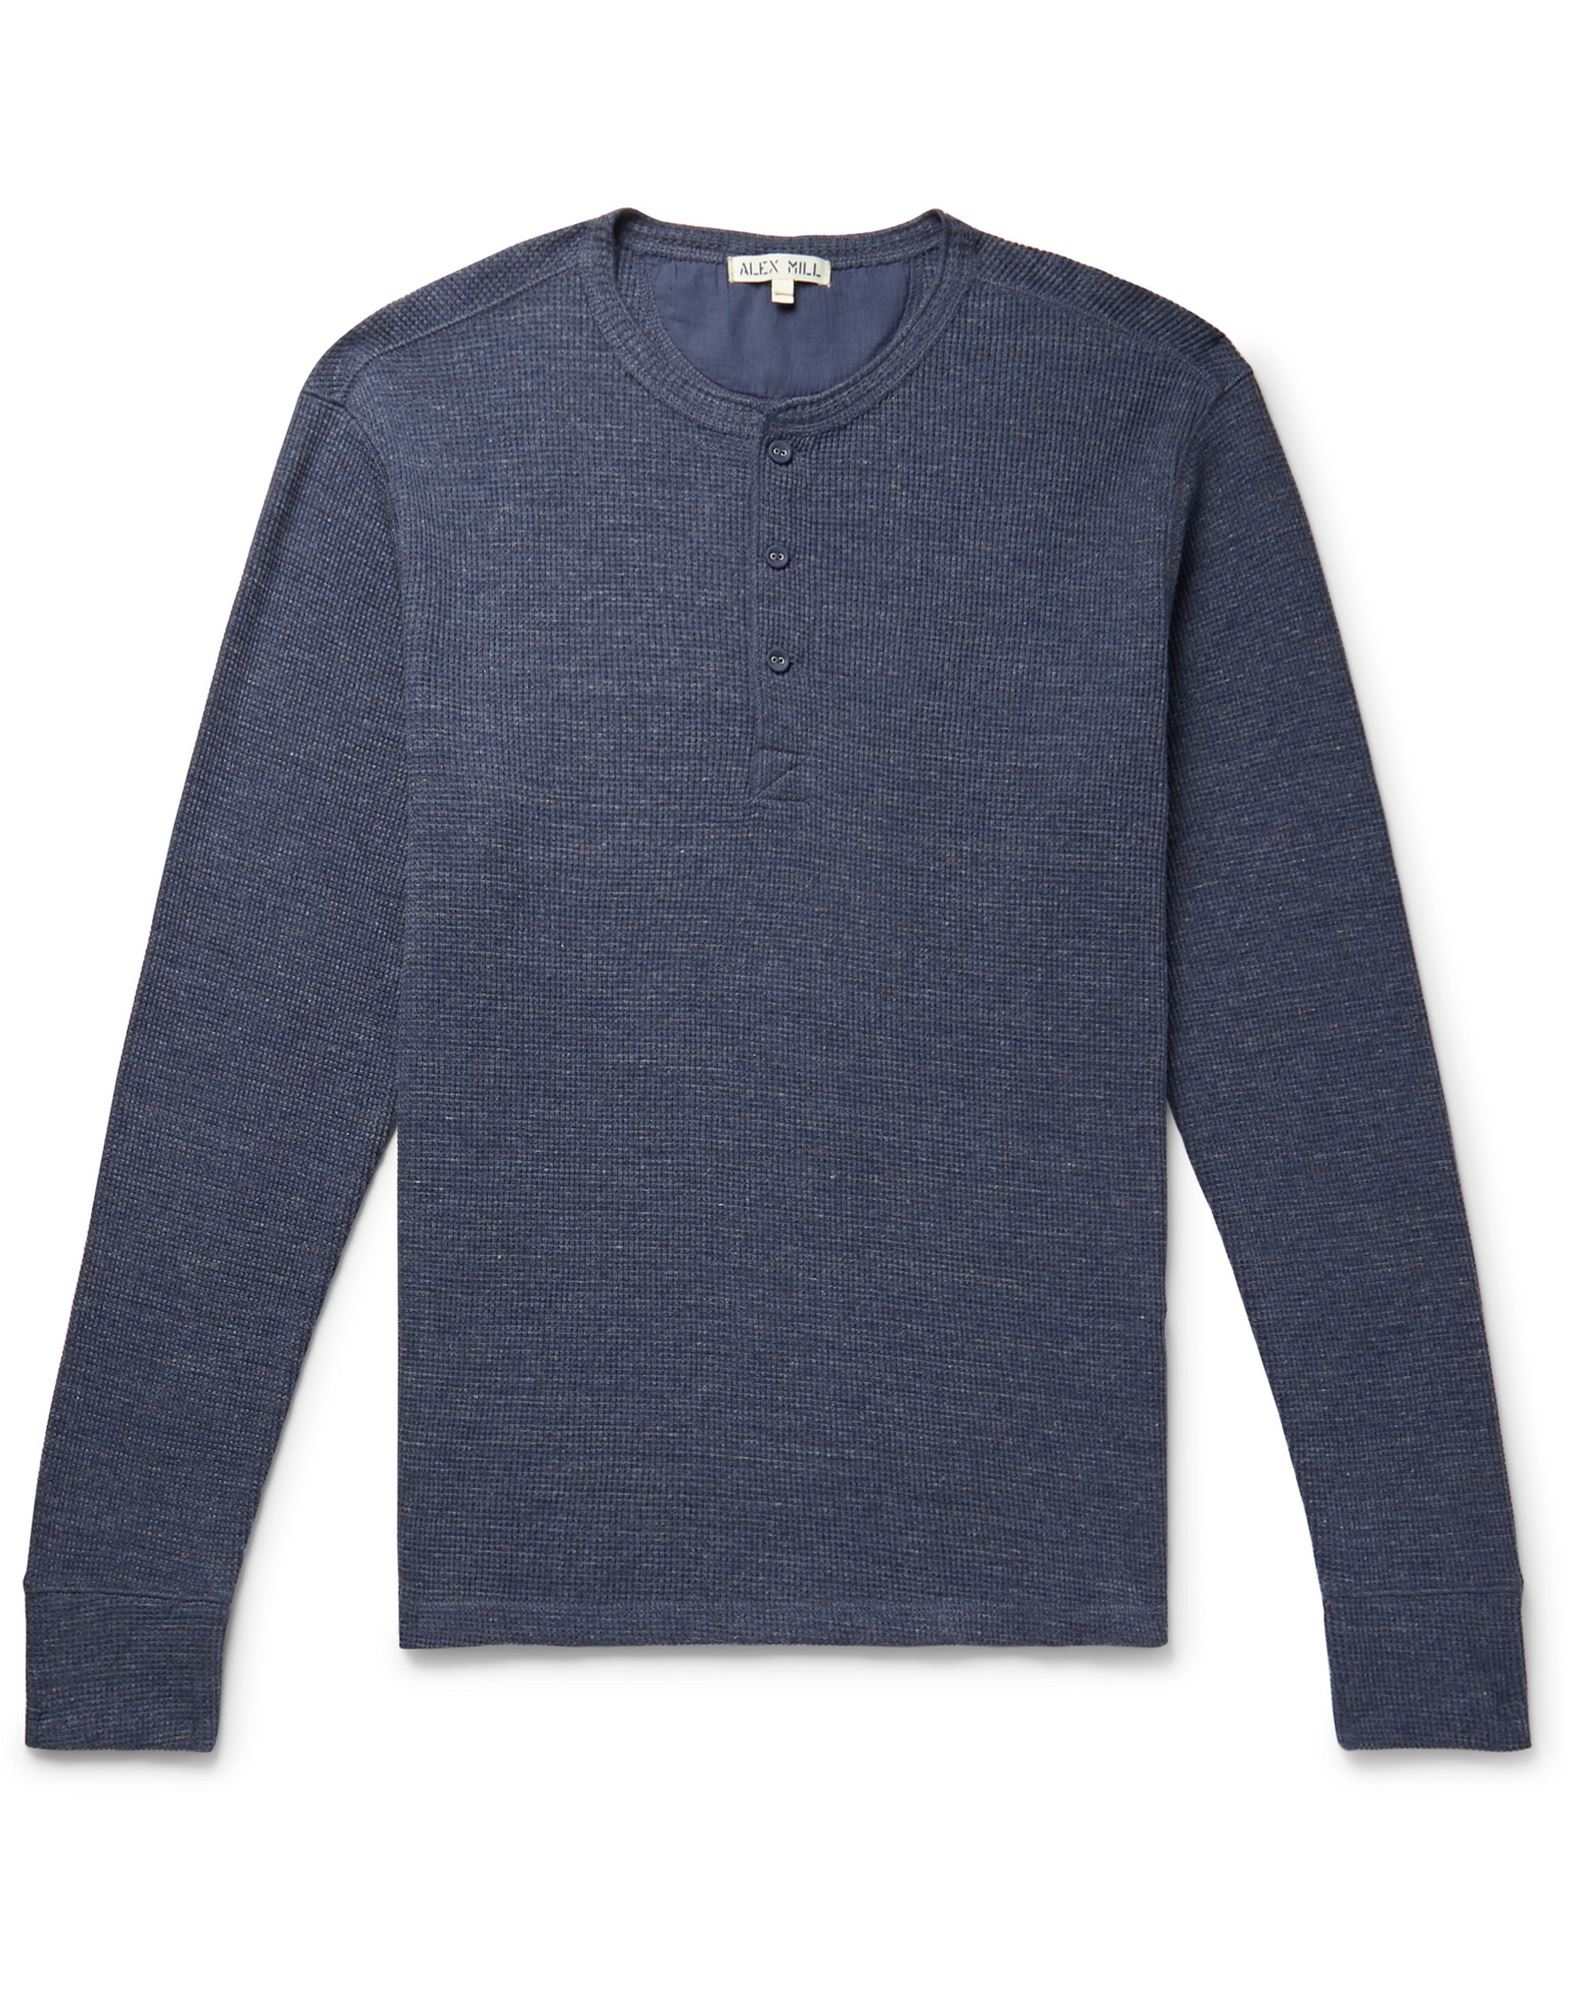 ALEX MILL Sweaters - Item 39895867